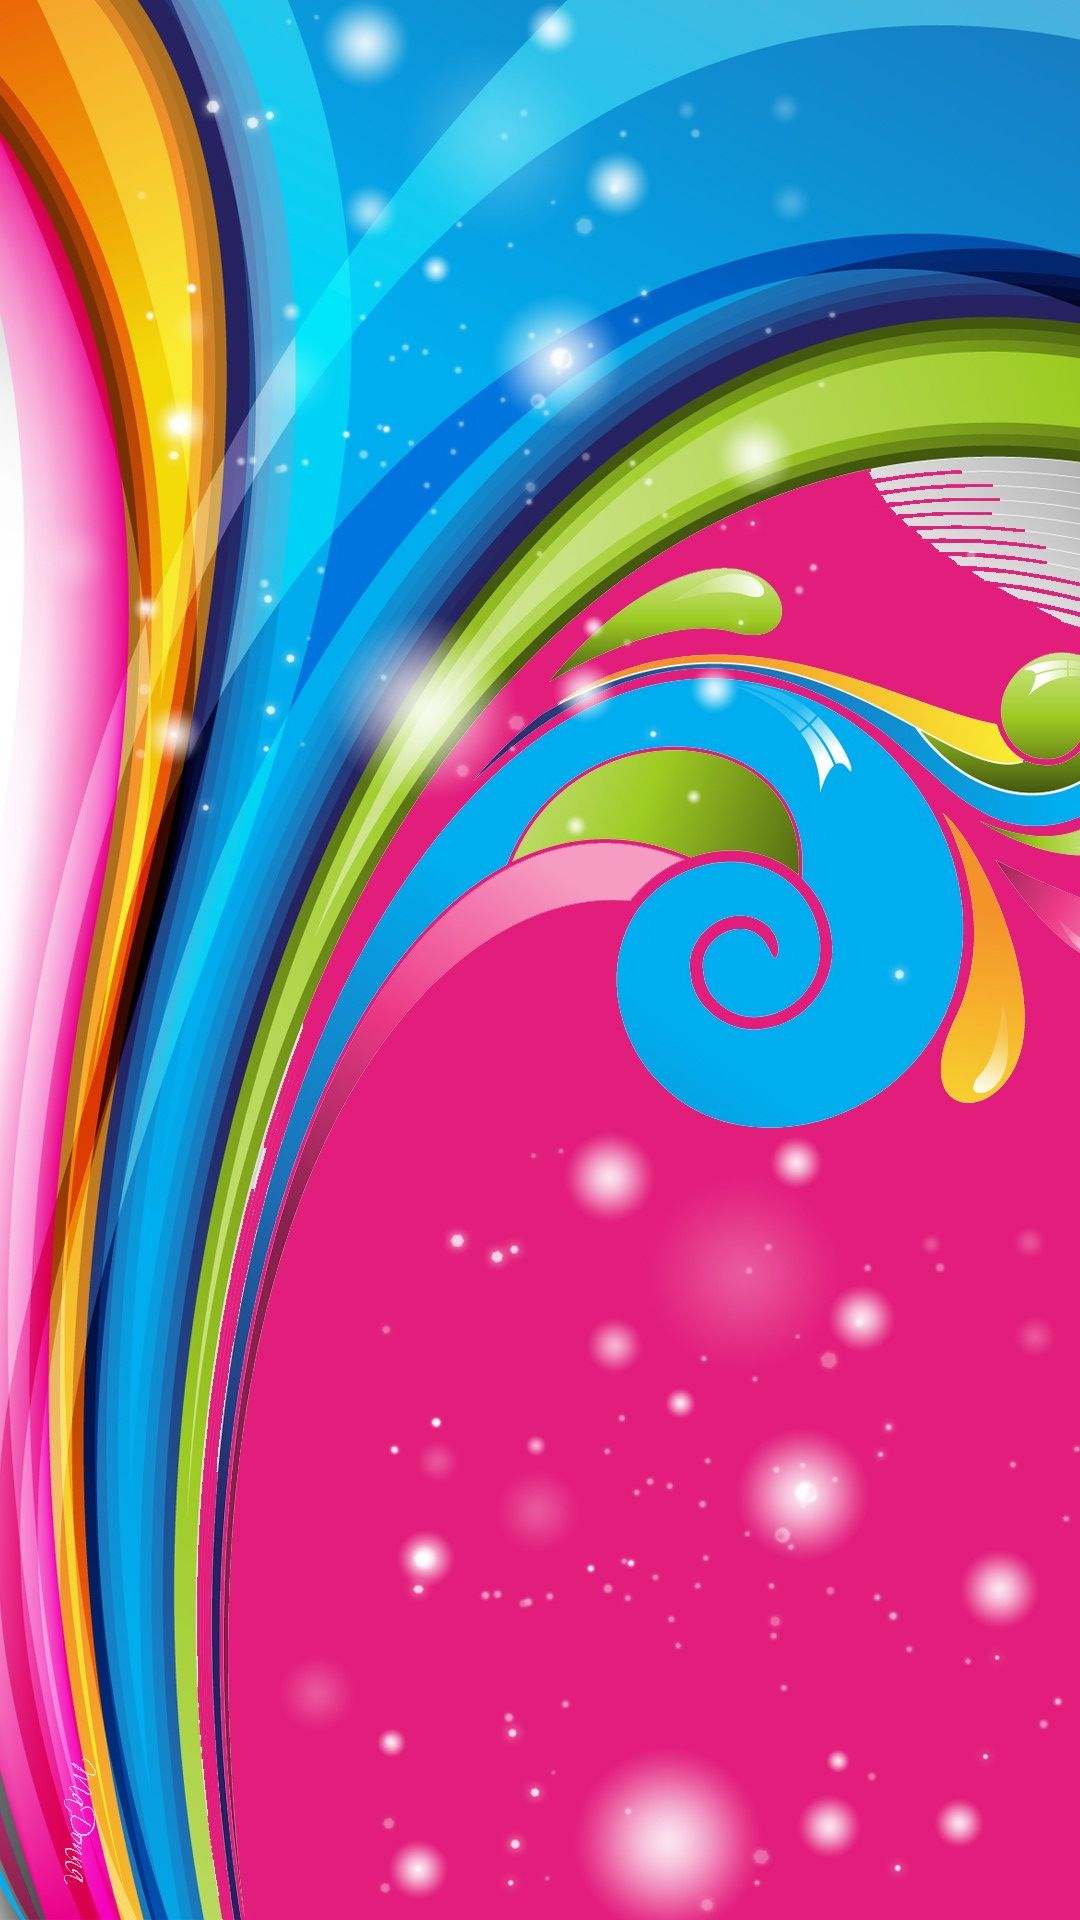 Cute Colorful Girly Wallpaper Background Pastel Background Wallpapers Wallpaper Backgrounds Geometric Wallpaper Android